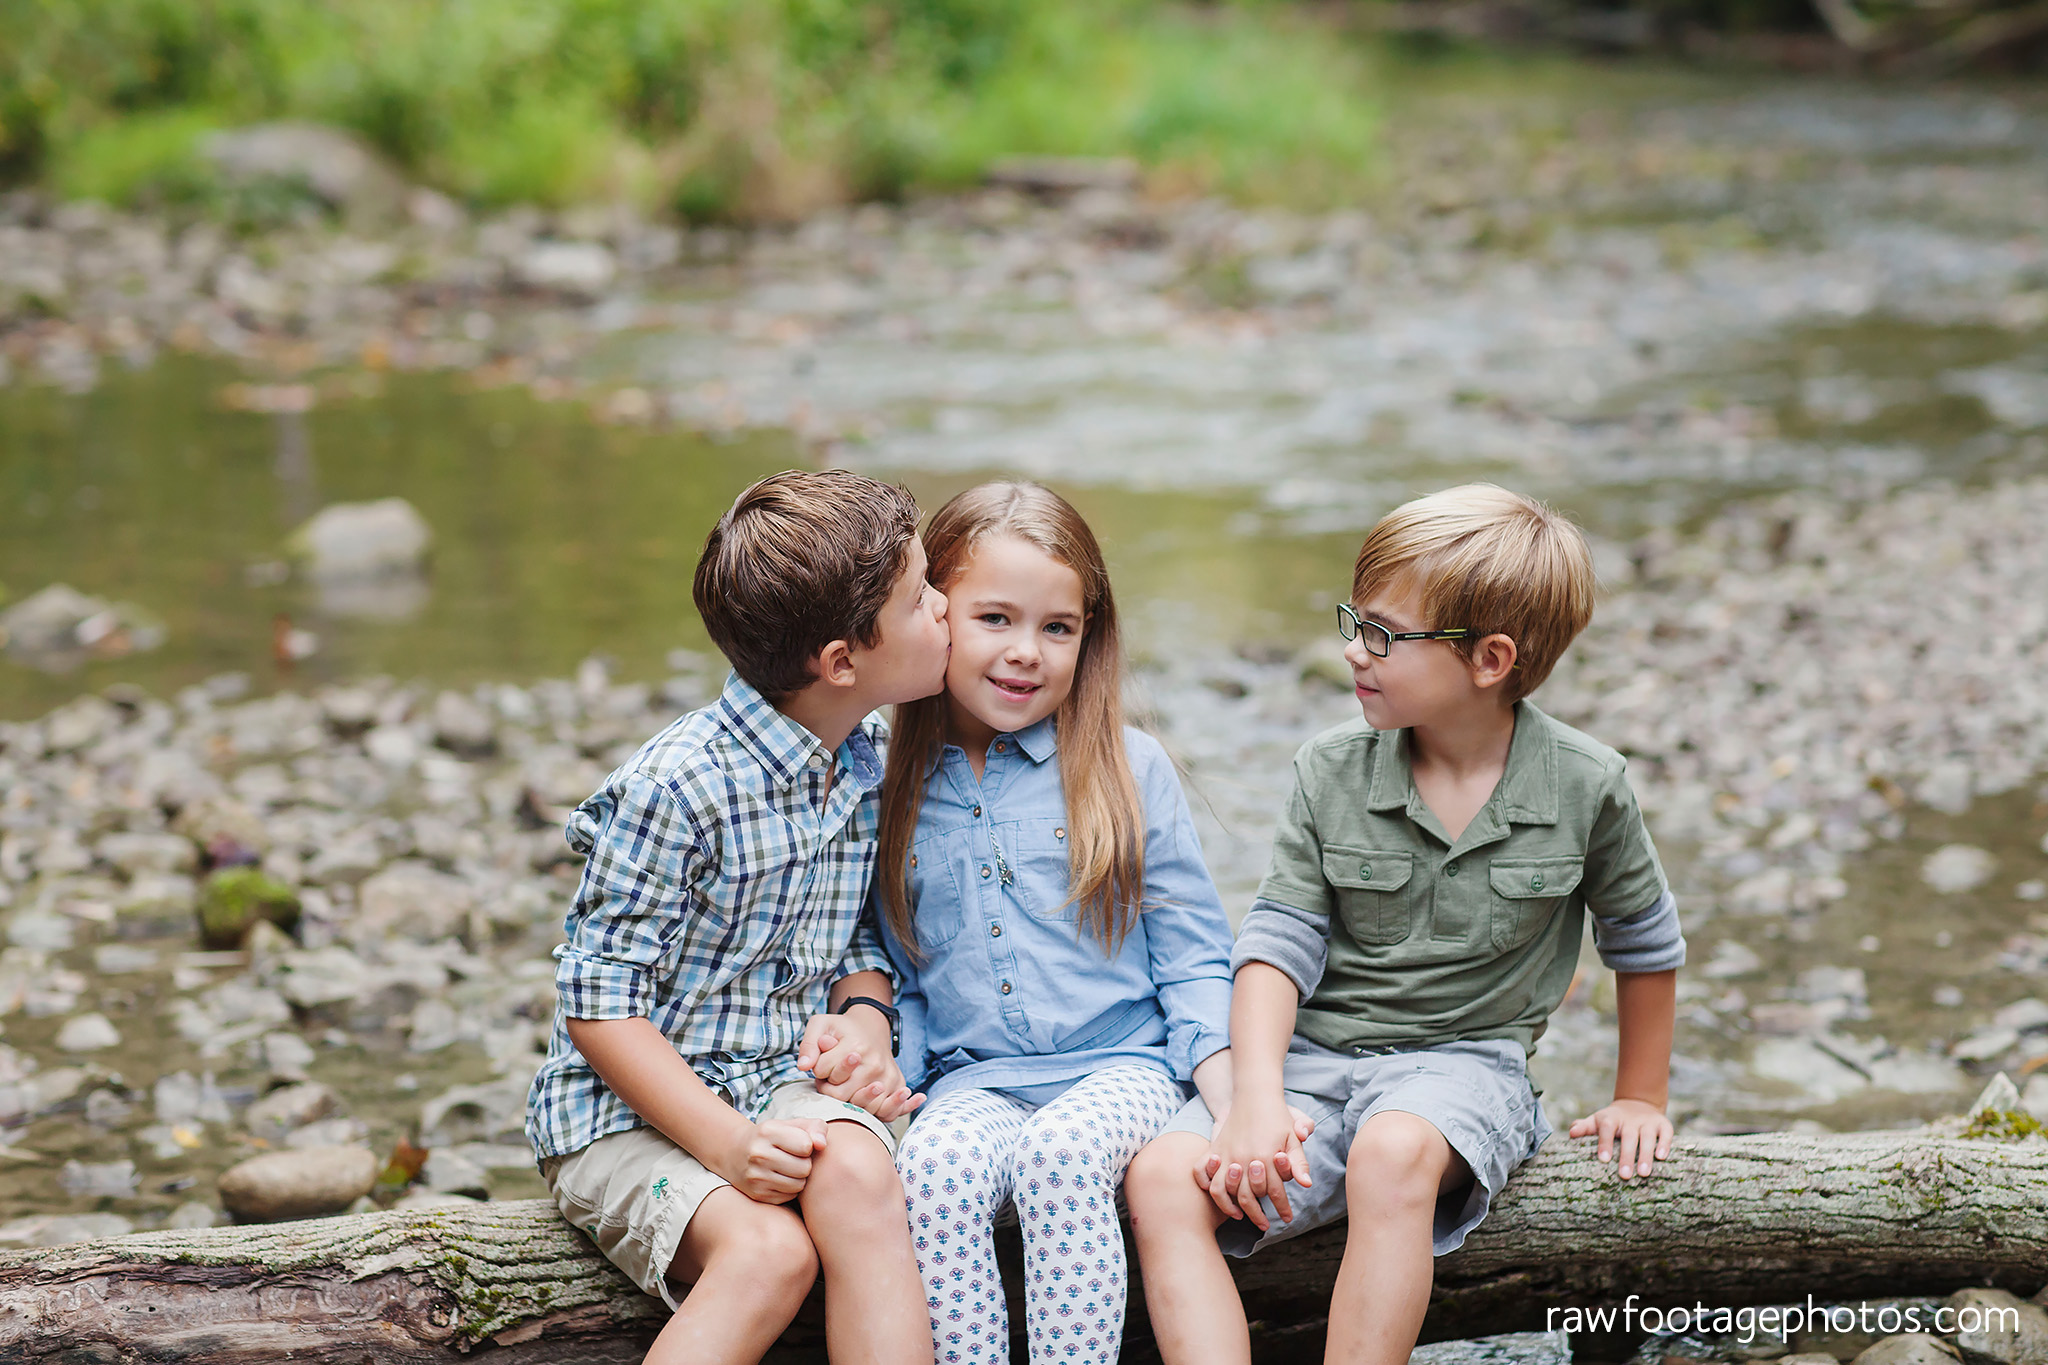 london_ontario_family_photographer-medway_creek-raw_footage_photography006.jpg